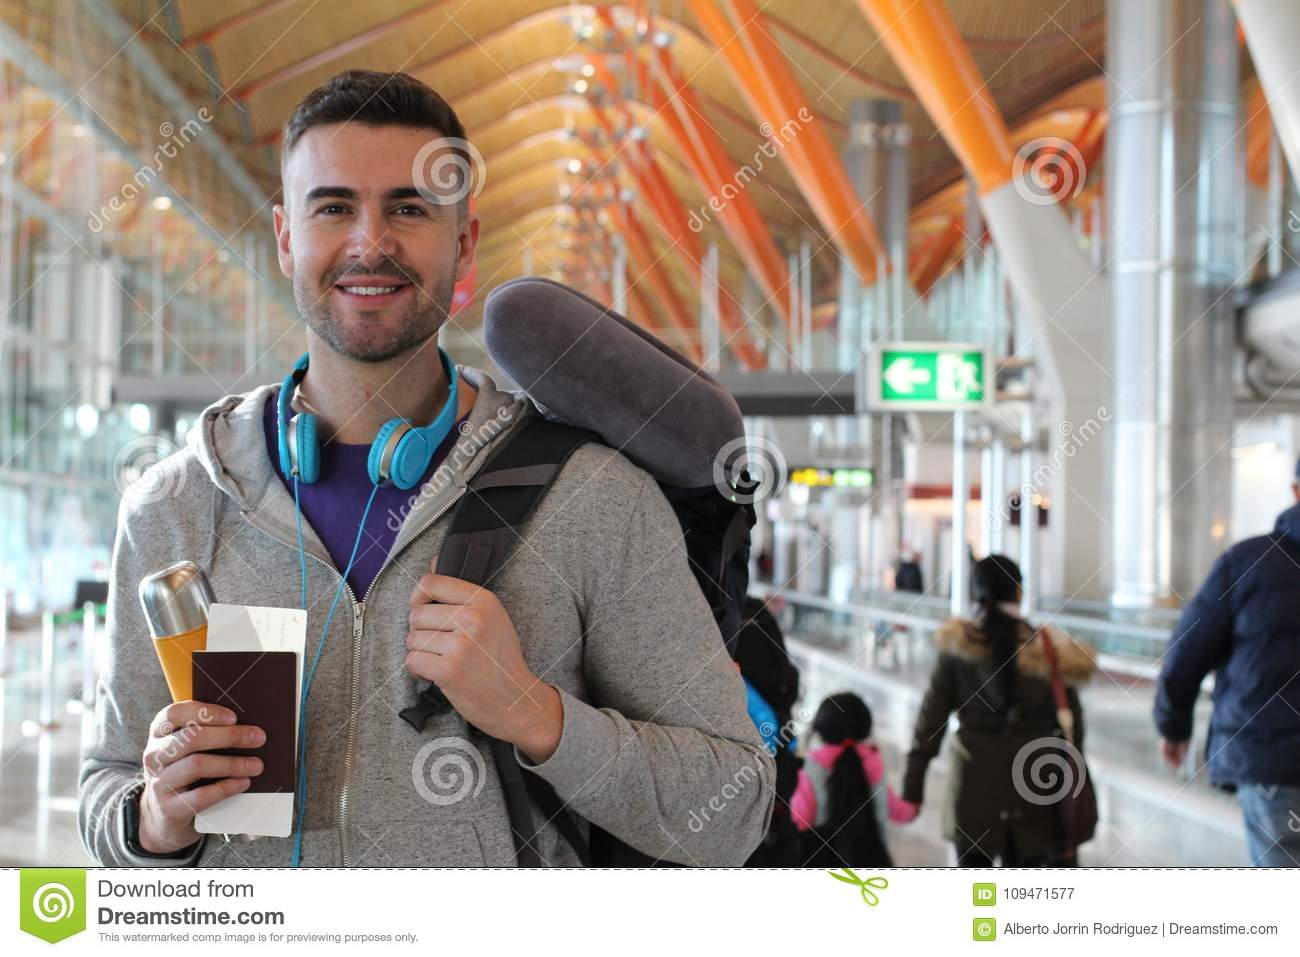 Man smiling in crowded airport